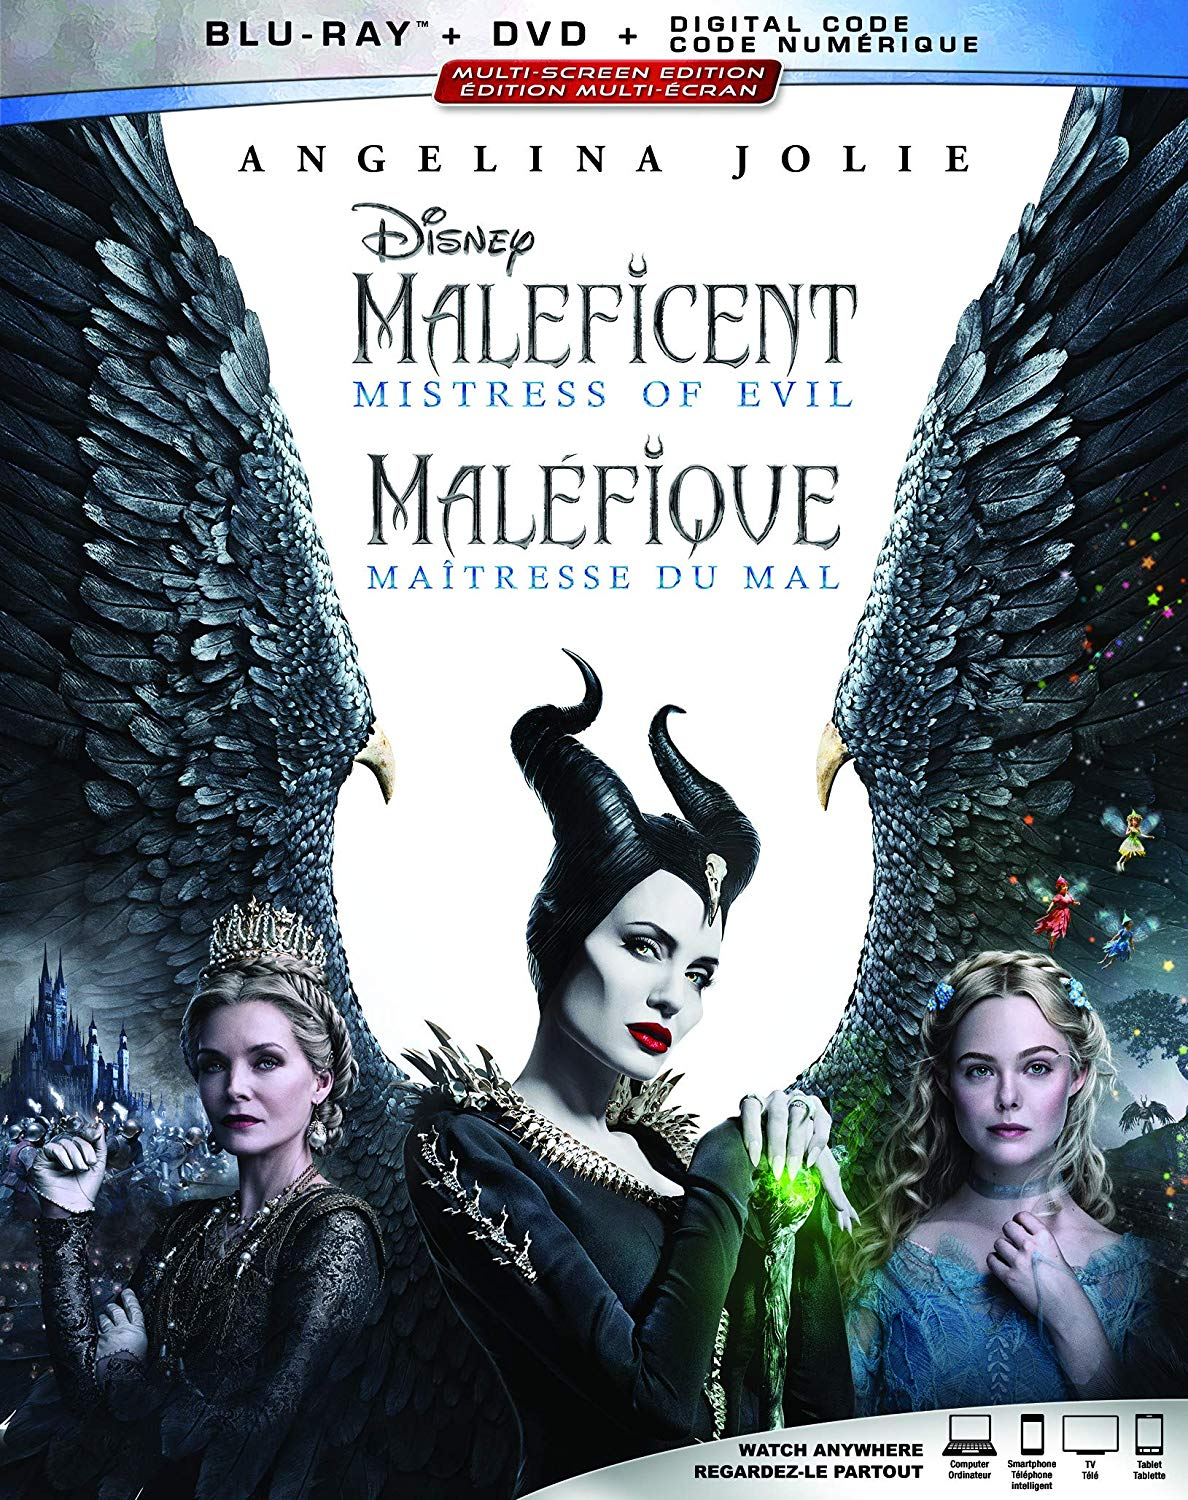 Maleficent: Mistress of Evil Blu-ray and DVD